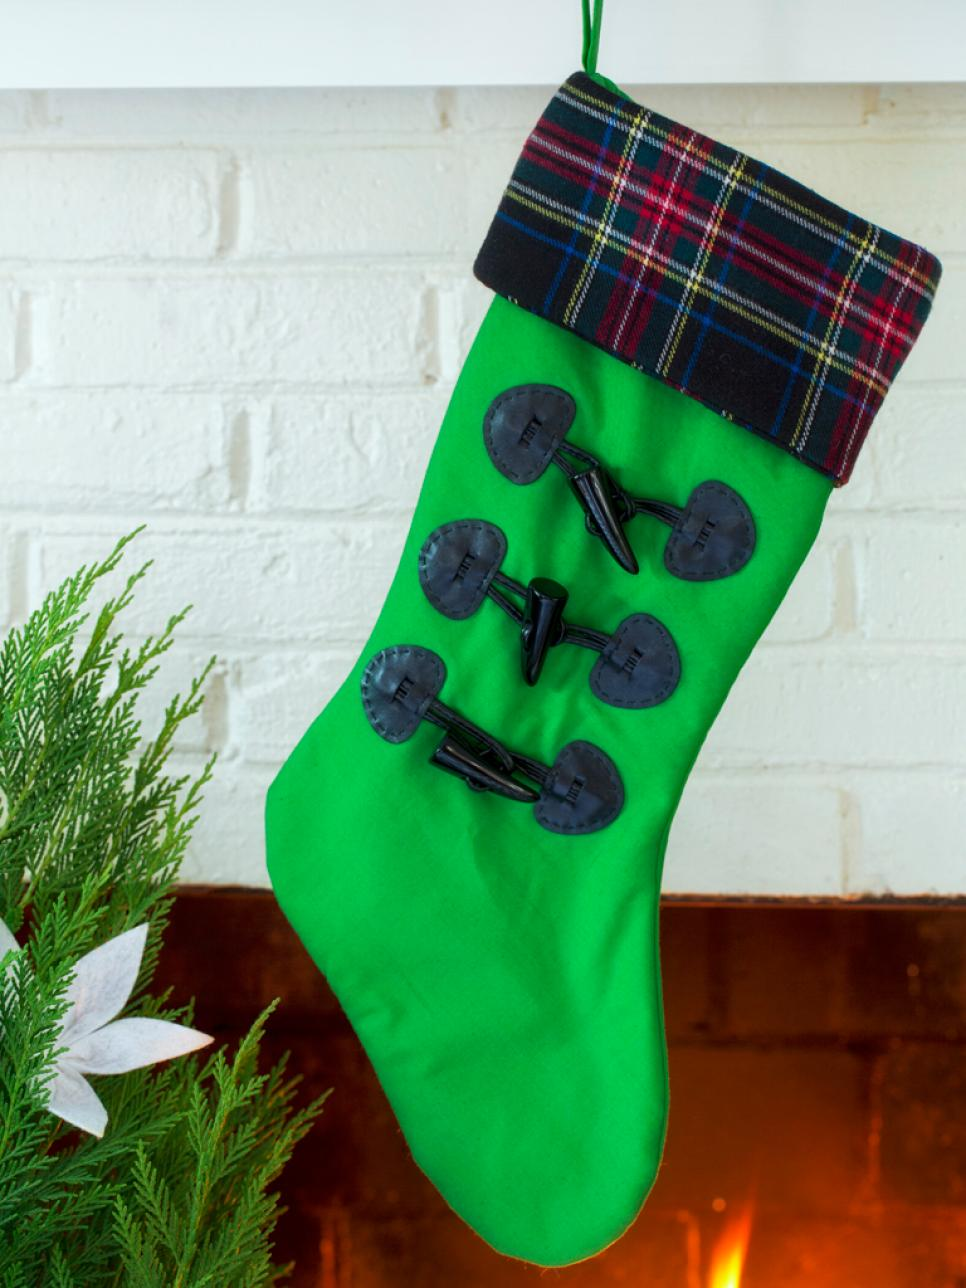 Find and save ideas about Christmas Stockings on Pinterest. | See more ideas about Diy christmas stockings, Xmas ideas and Xmas gifts.